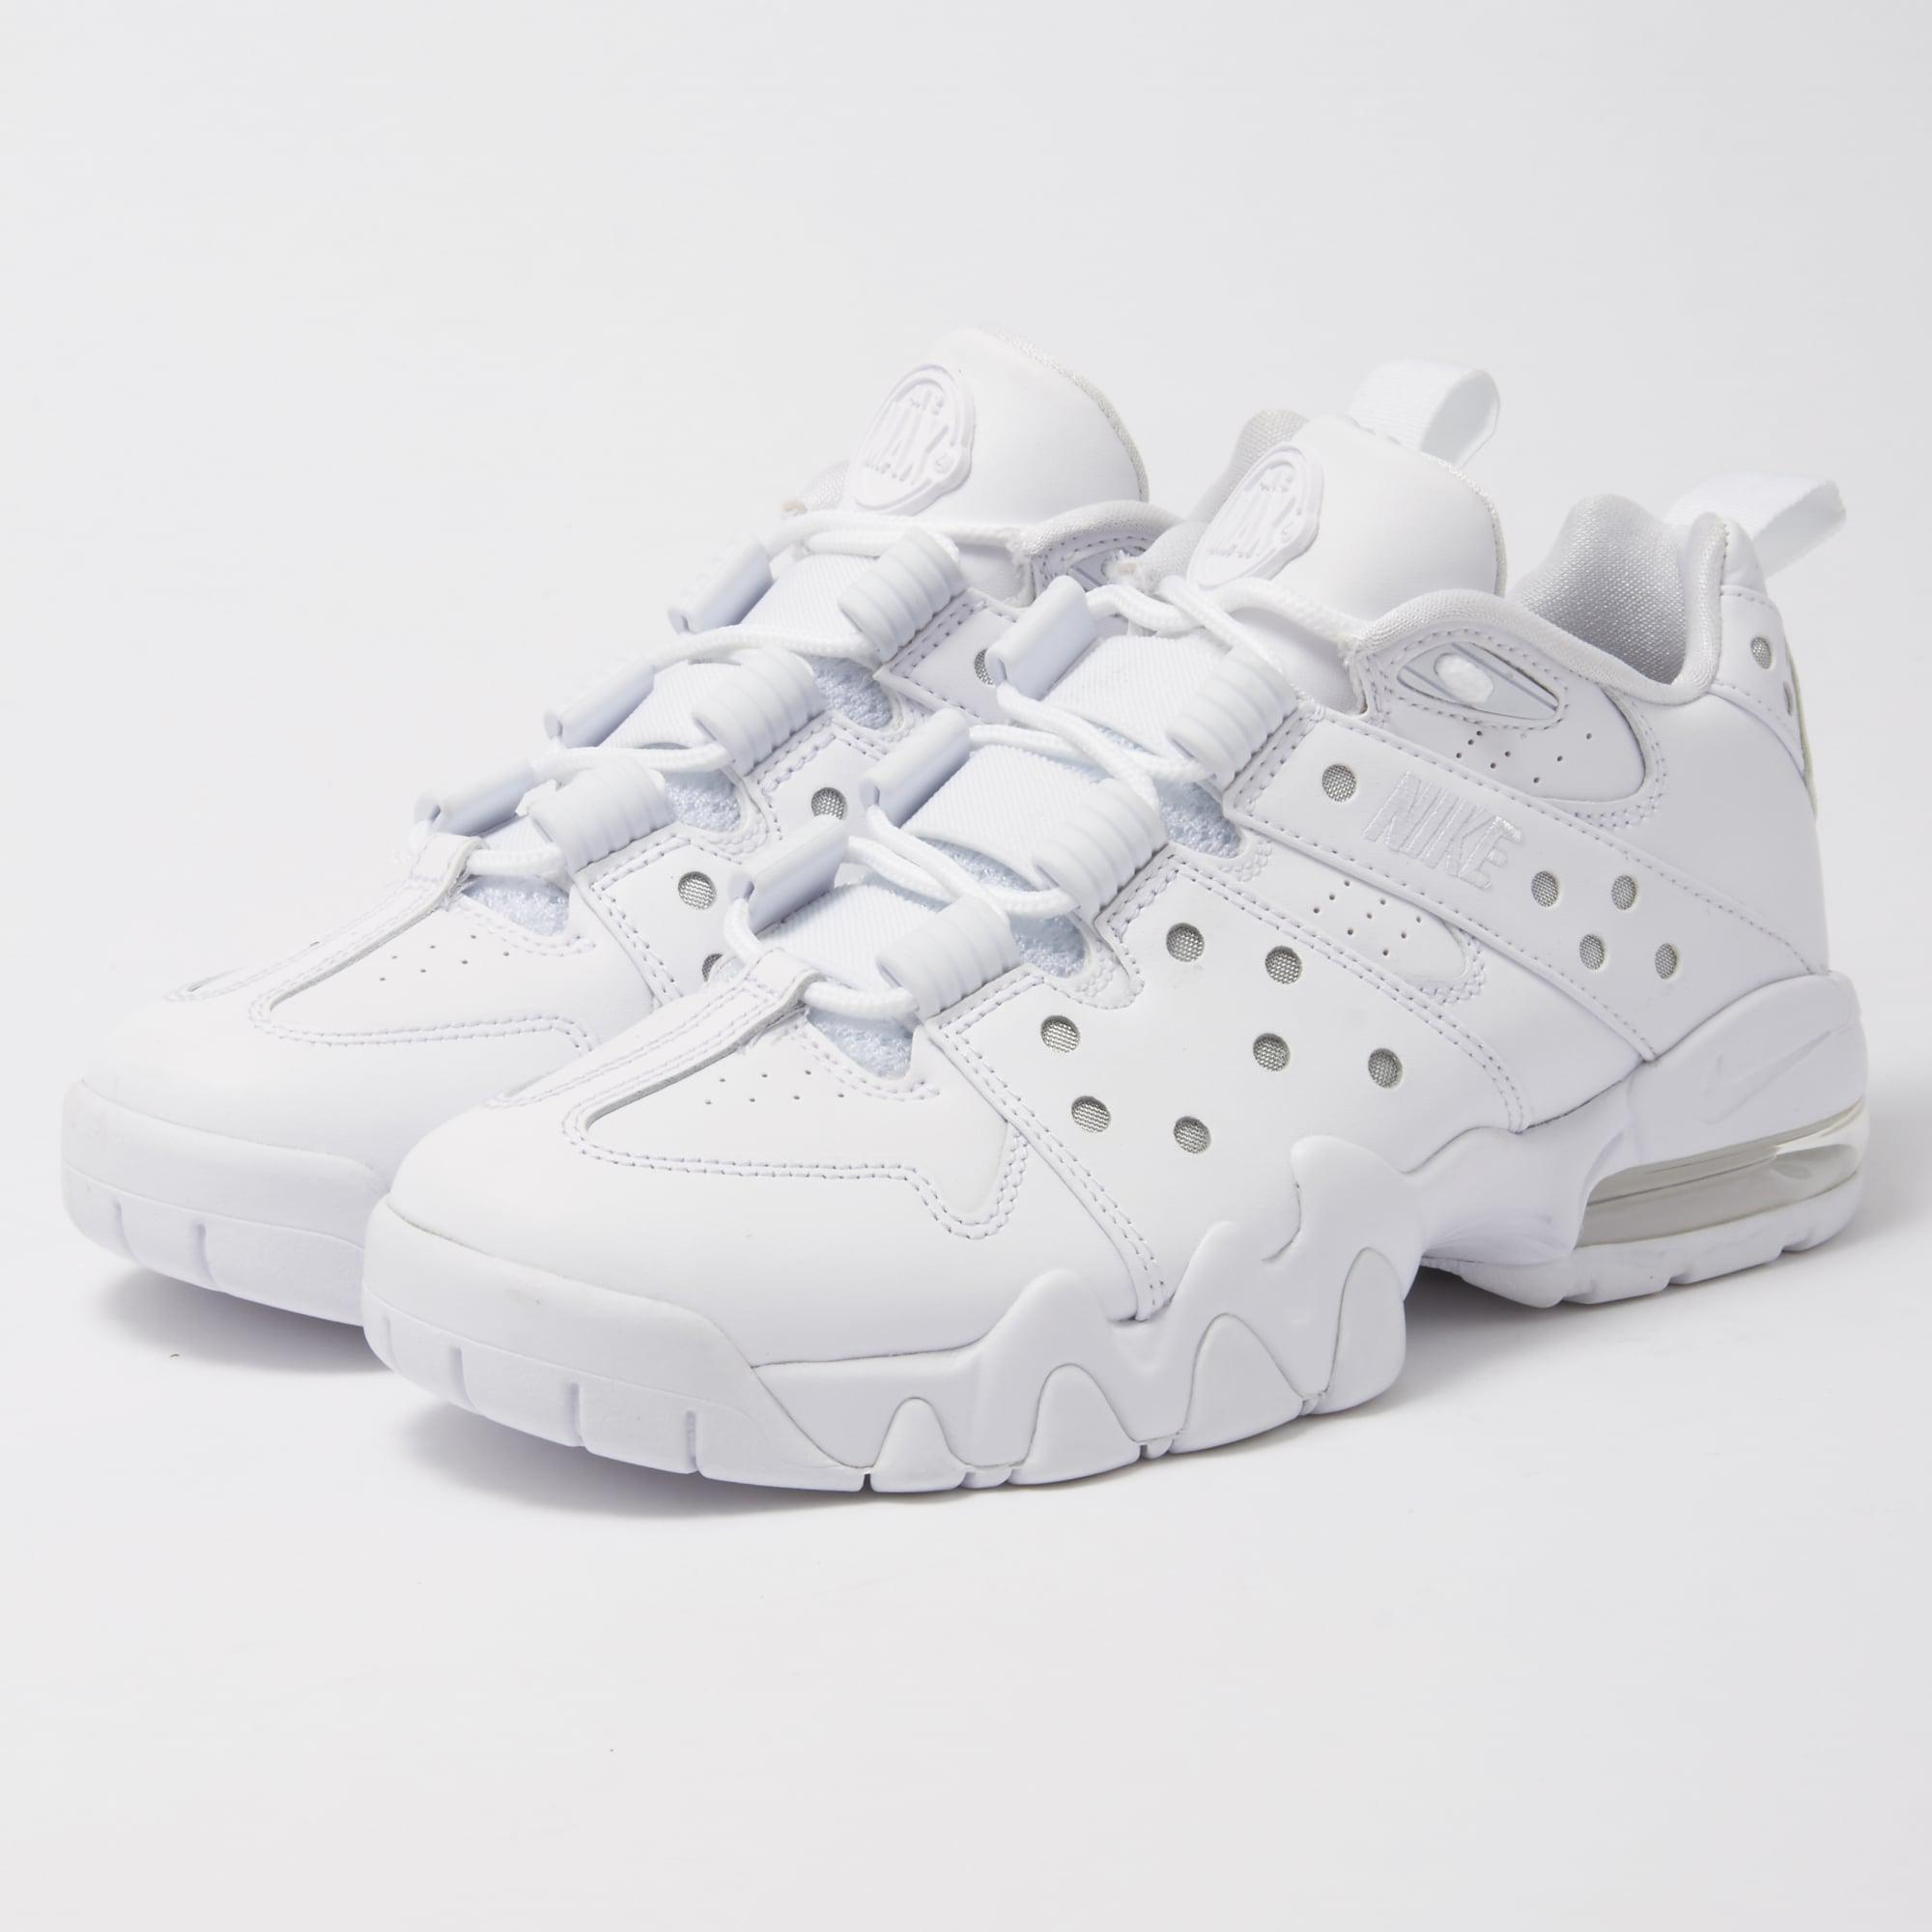 buy popular a5b5d be3c9 Lyst - Nike Air Max Cb 94 Low in White for Men